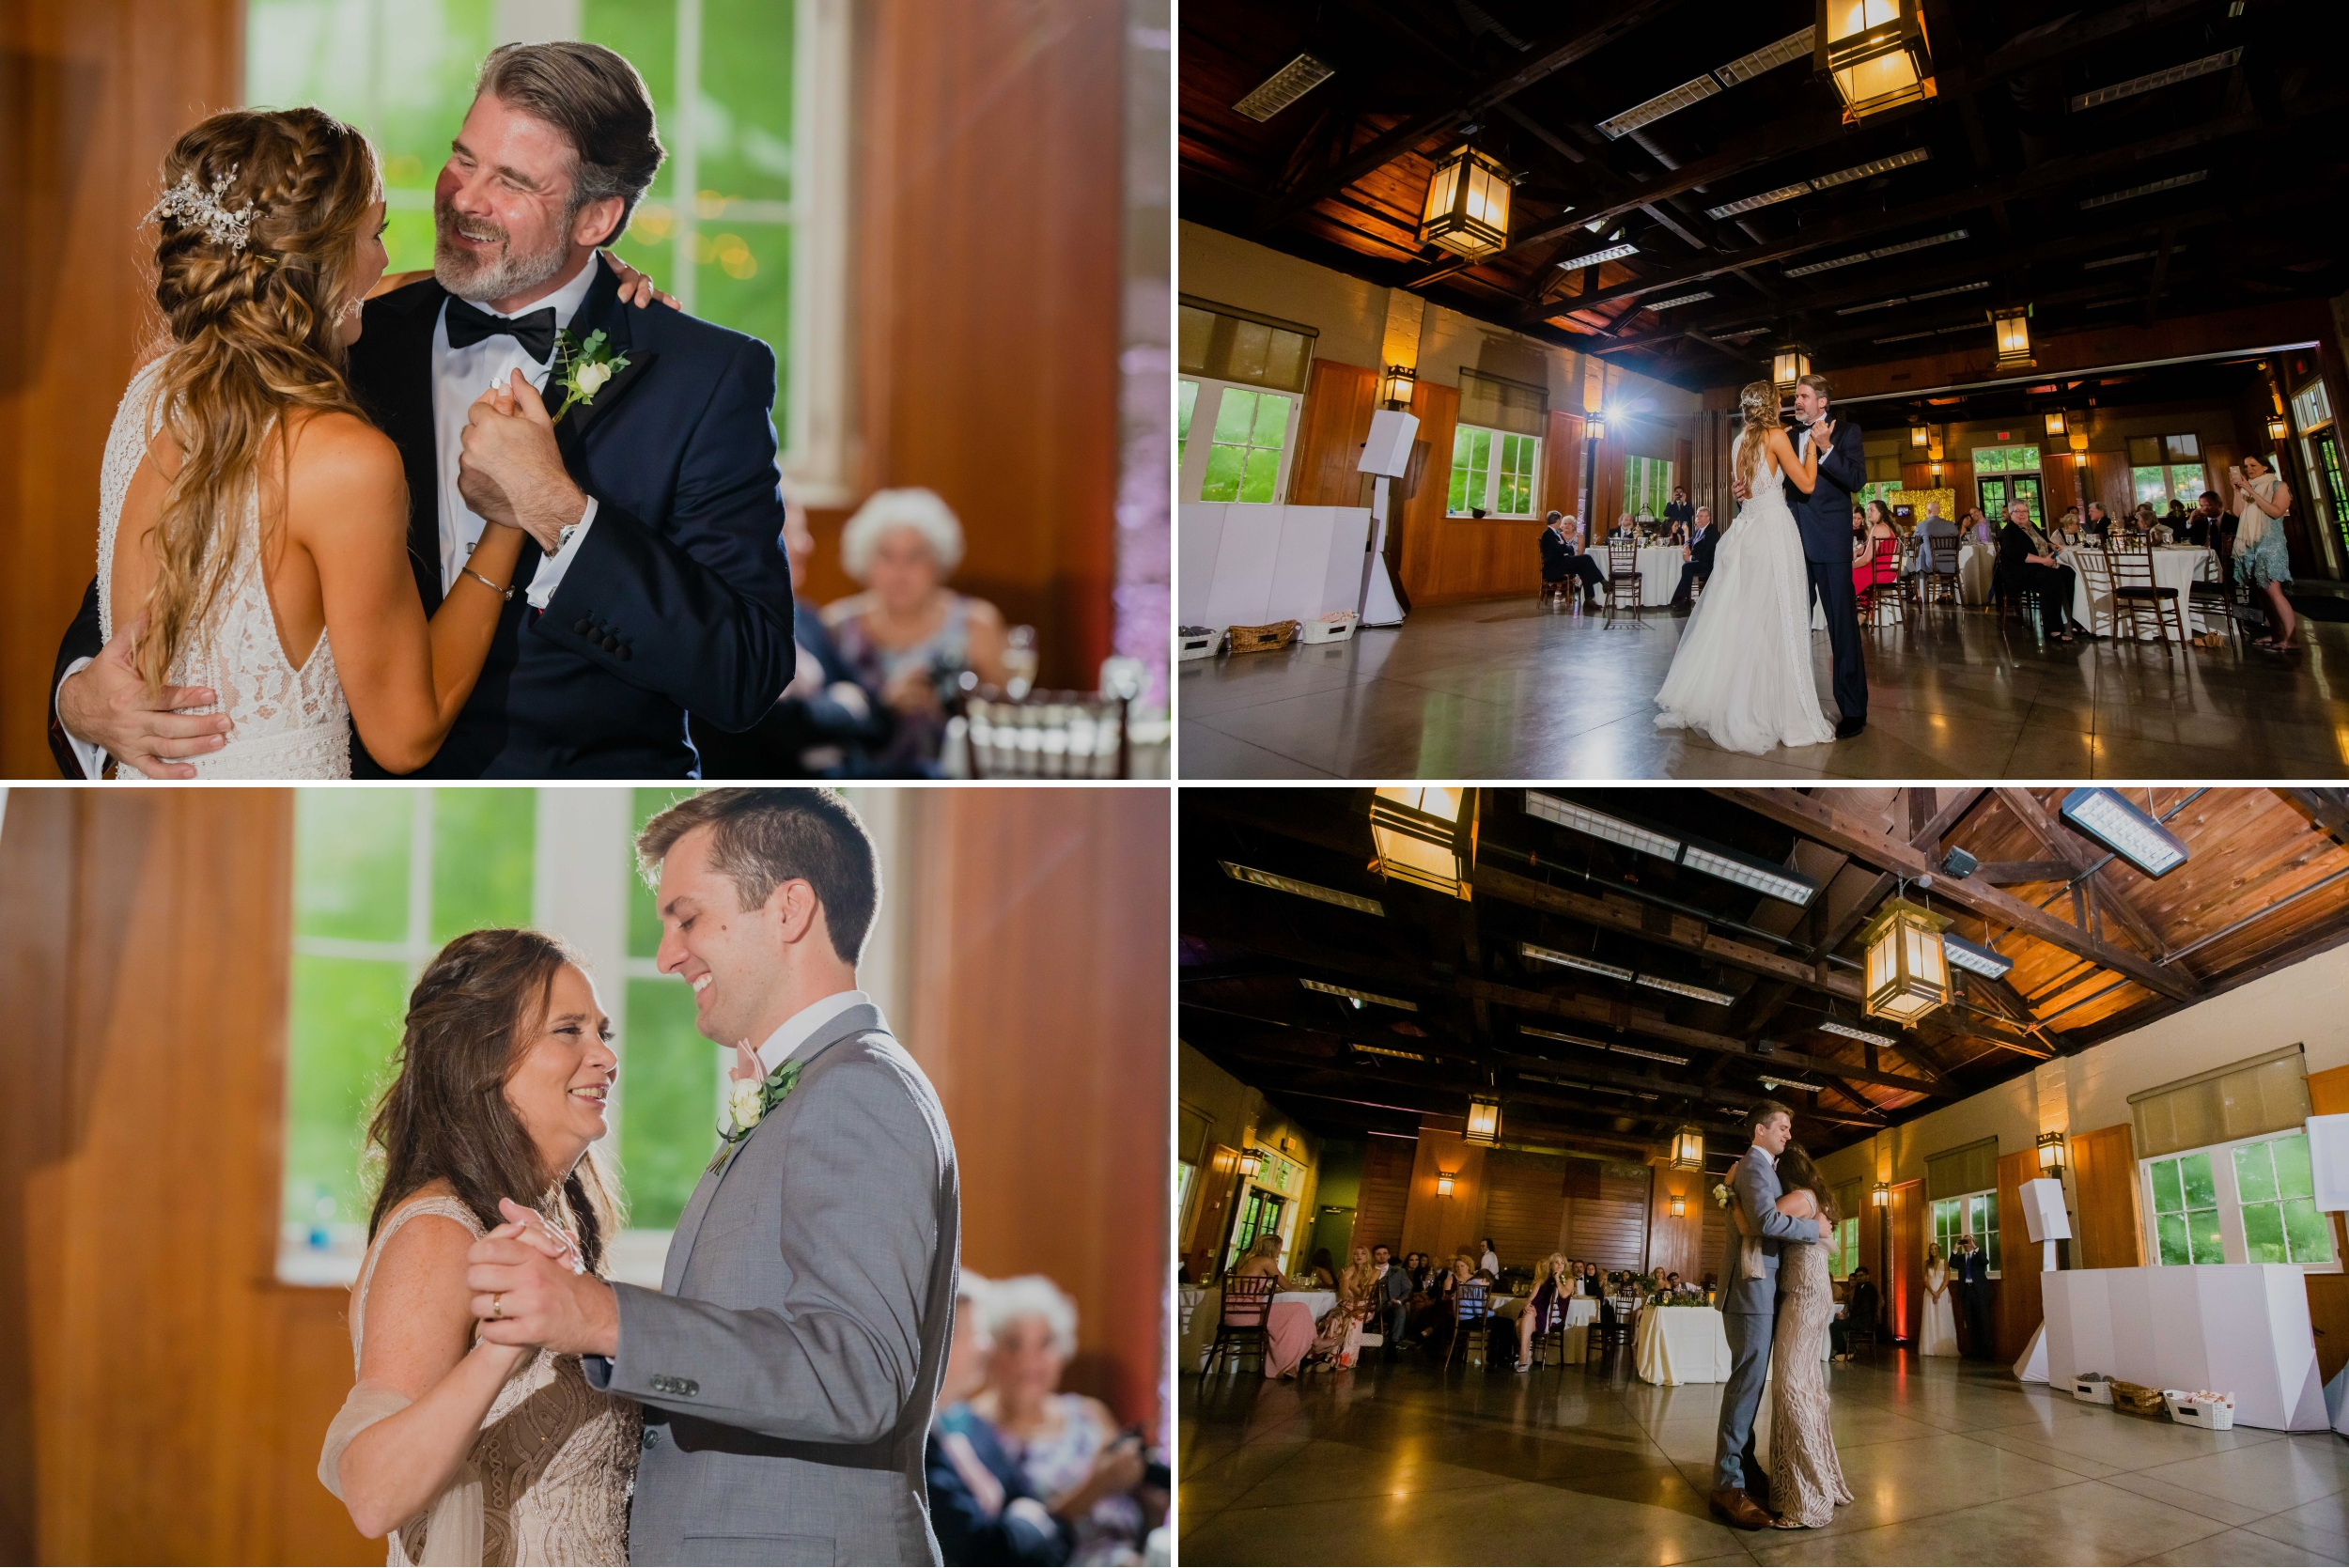 Wedding Piedmont Park - Magnolia Hall - Santy Martinez Photography 41.jpg